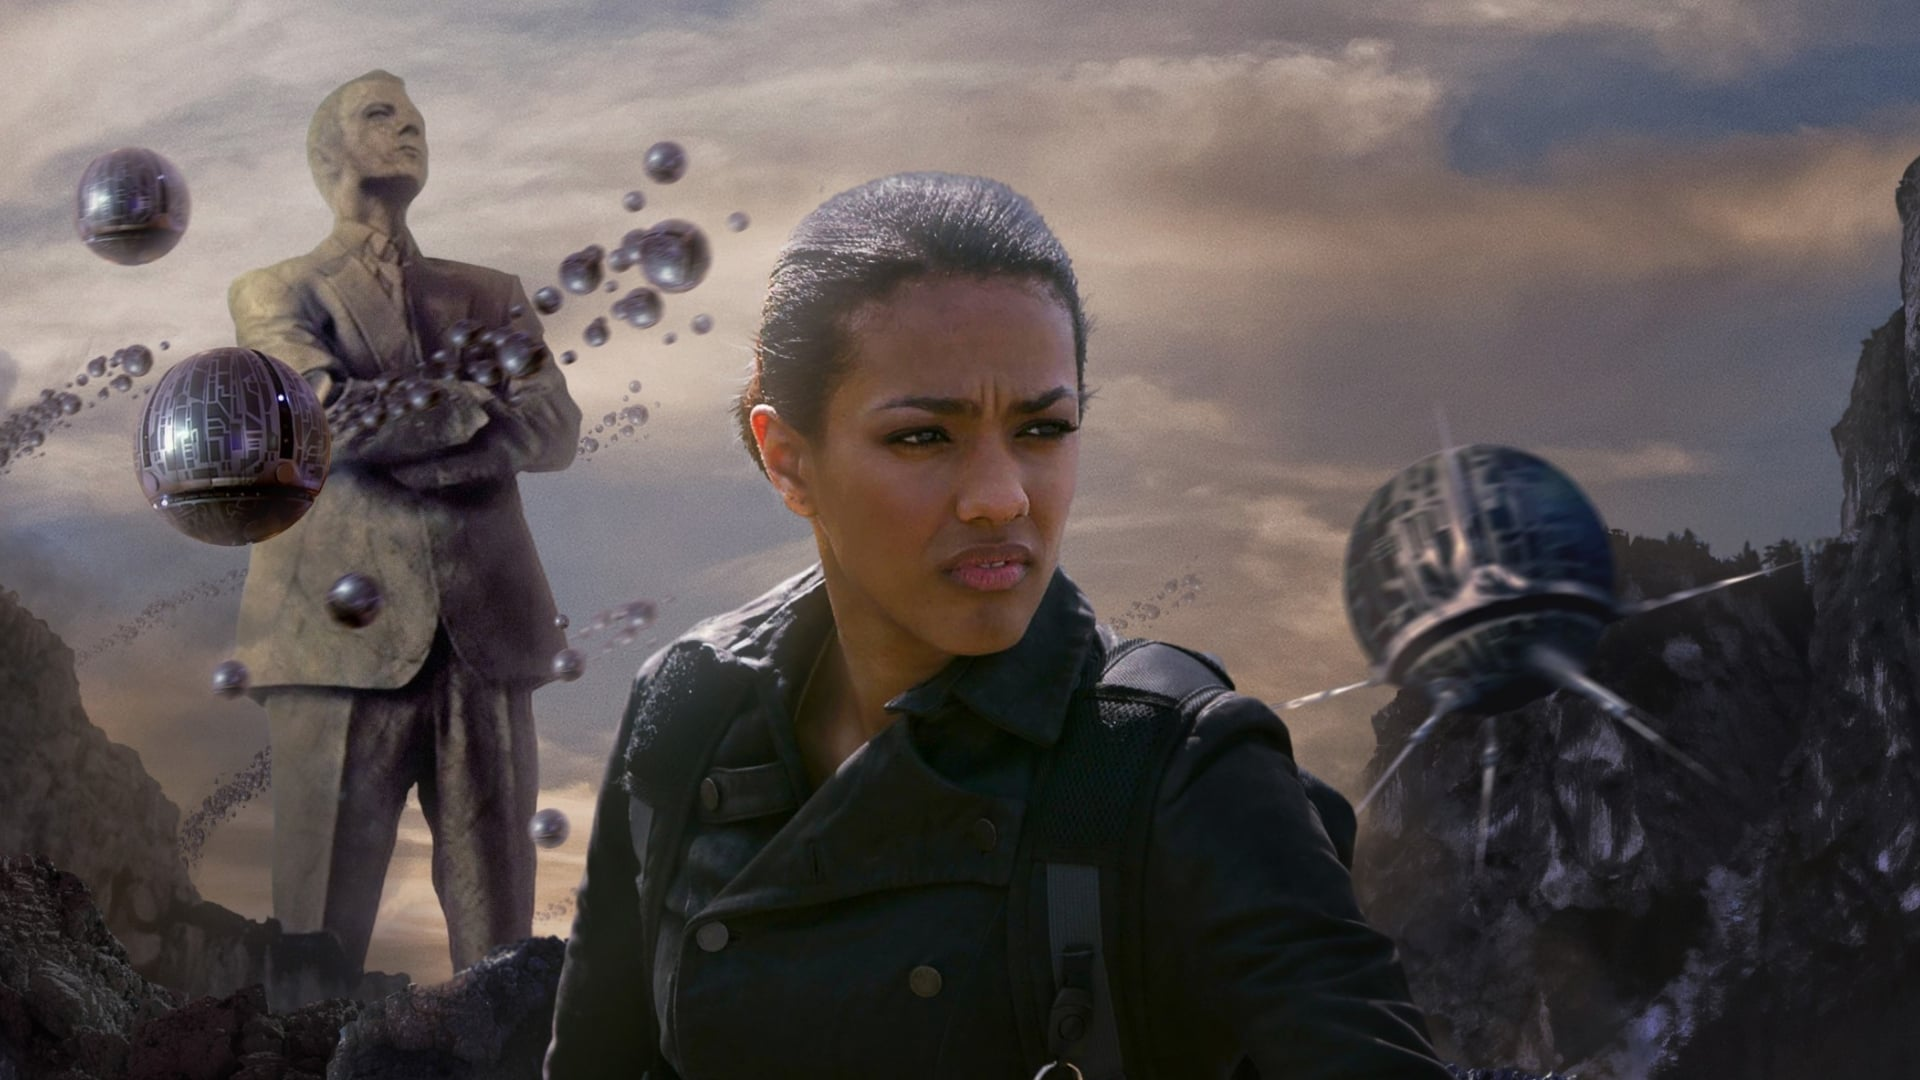 Doctor Who - Season 12 Episode 9 The Ascension of the Cybermen (1)